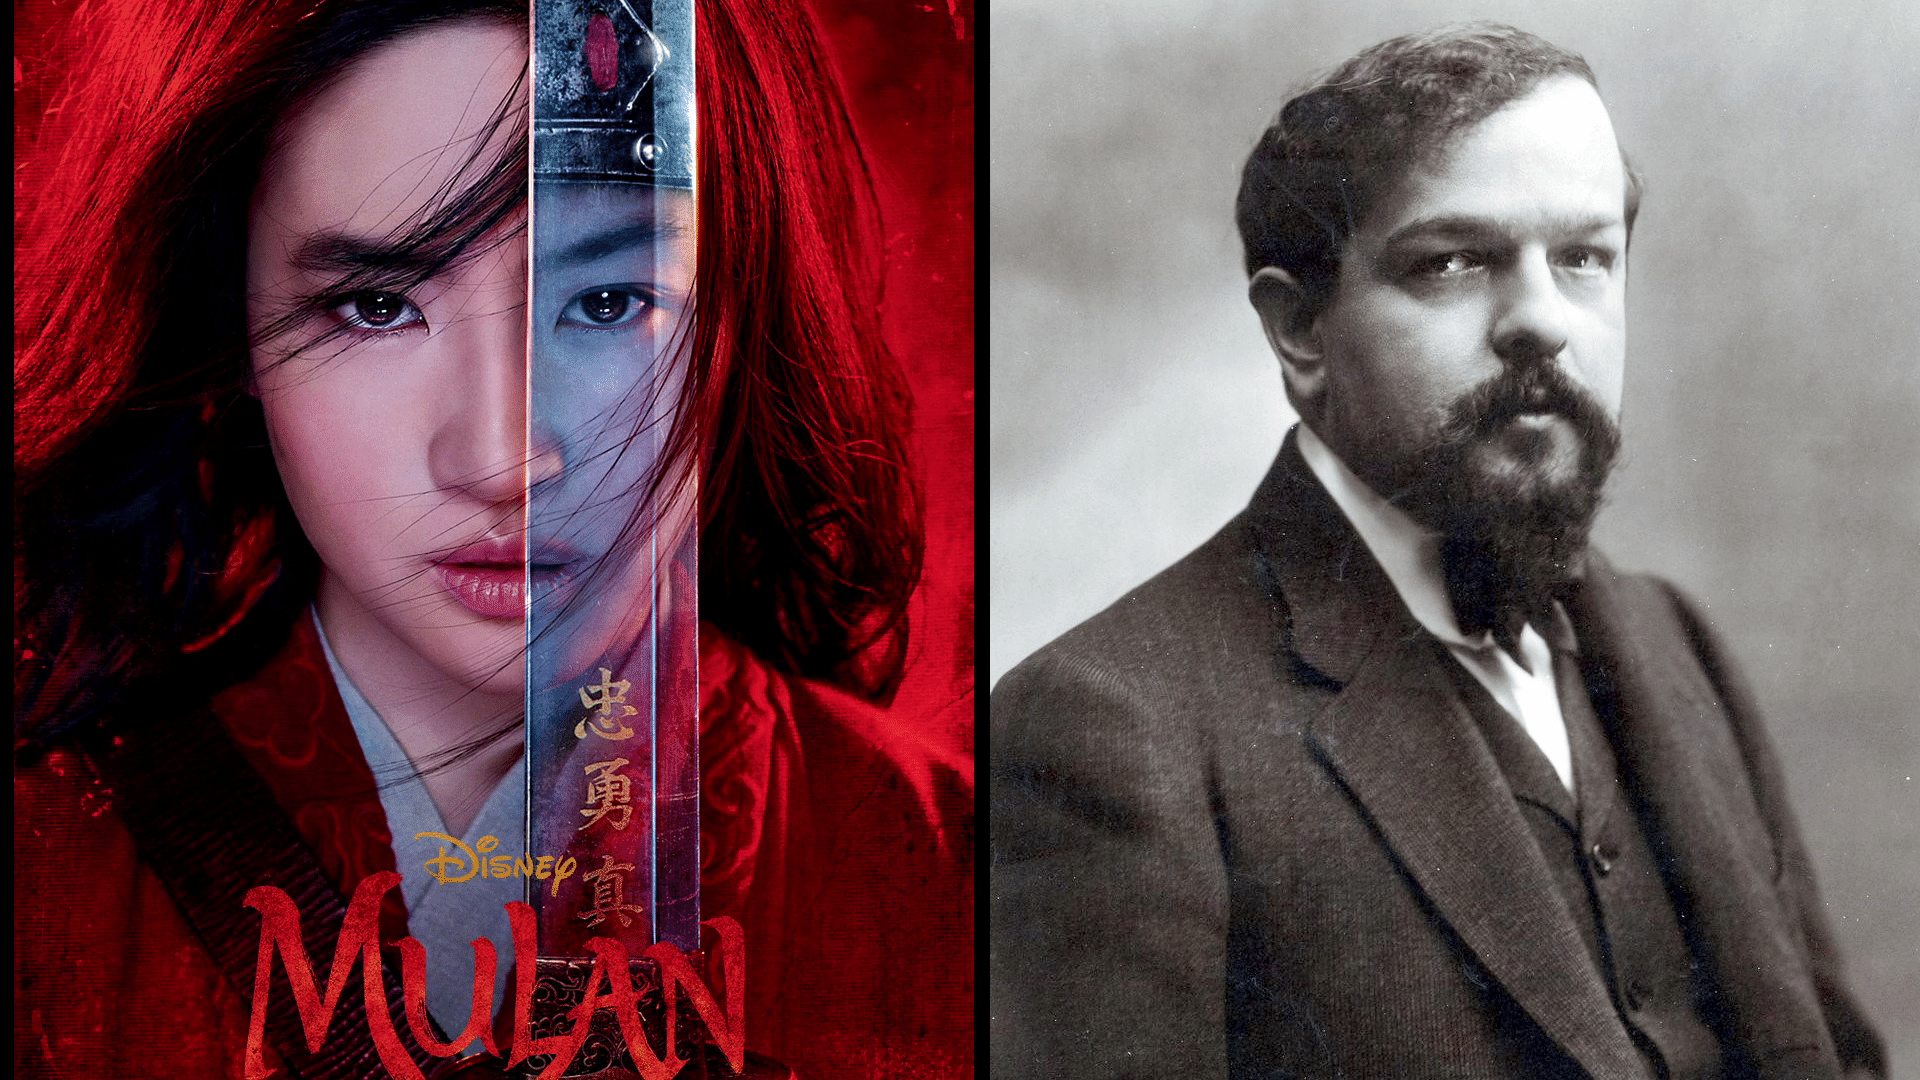 Disney Mulan and Claude Debussy's Pagodes